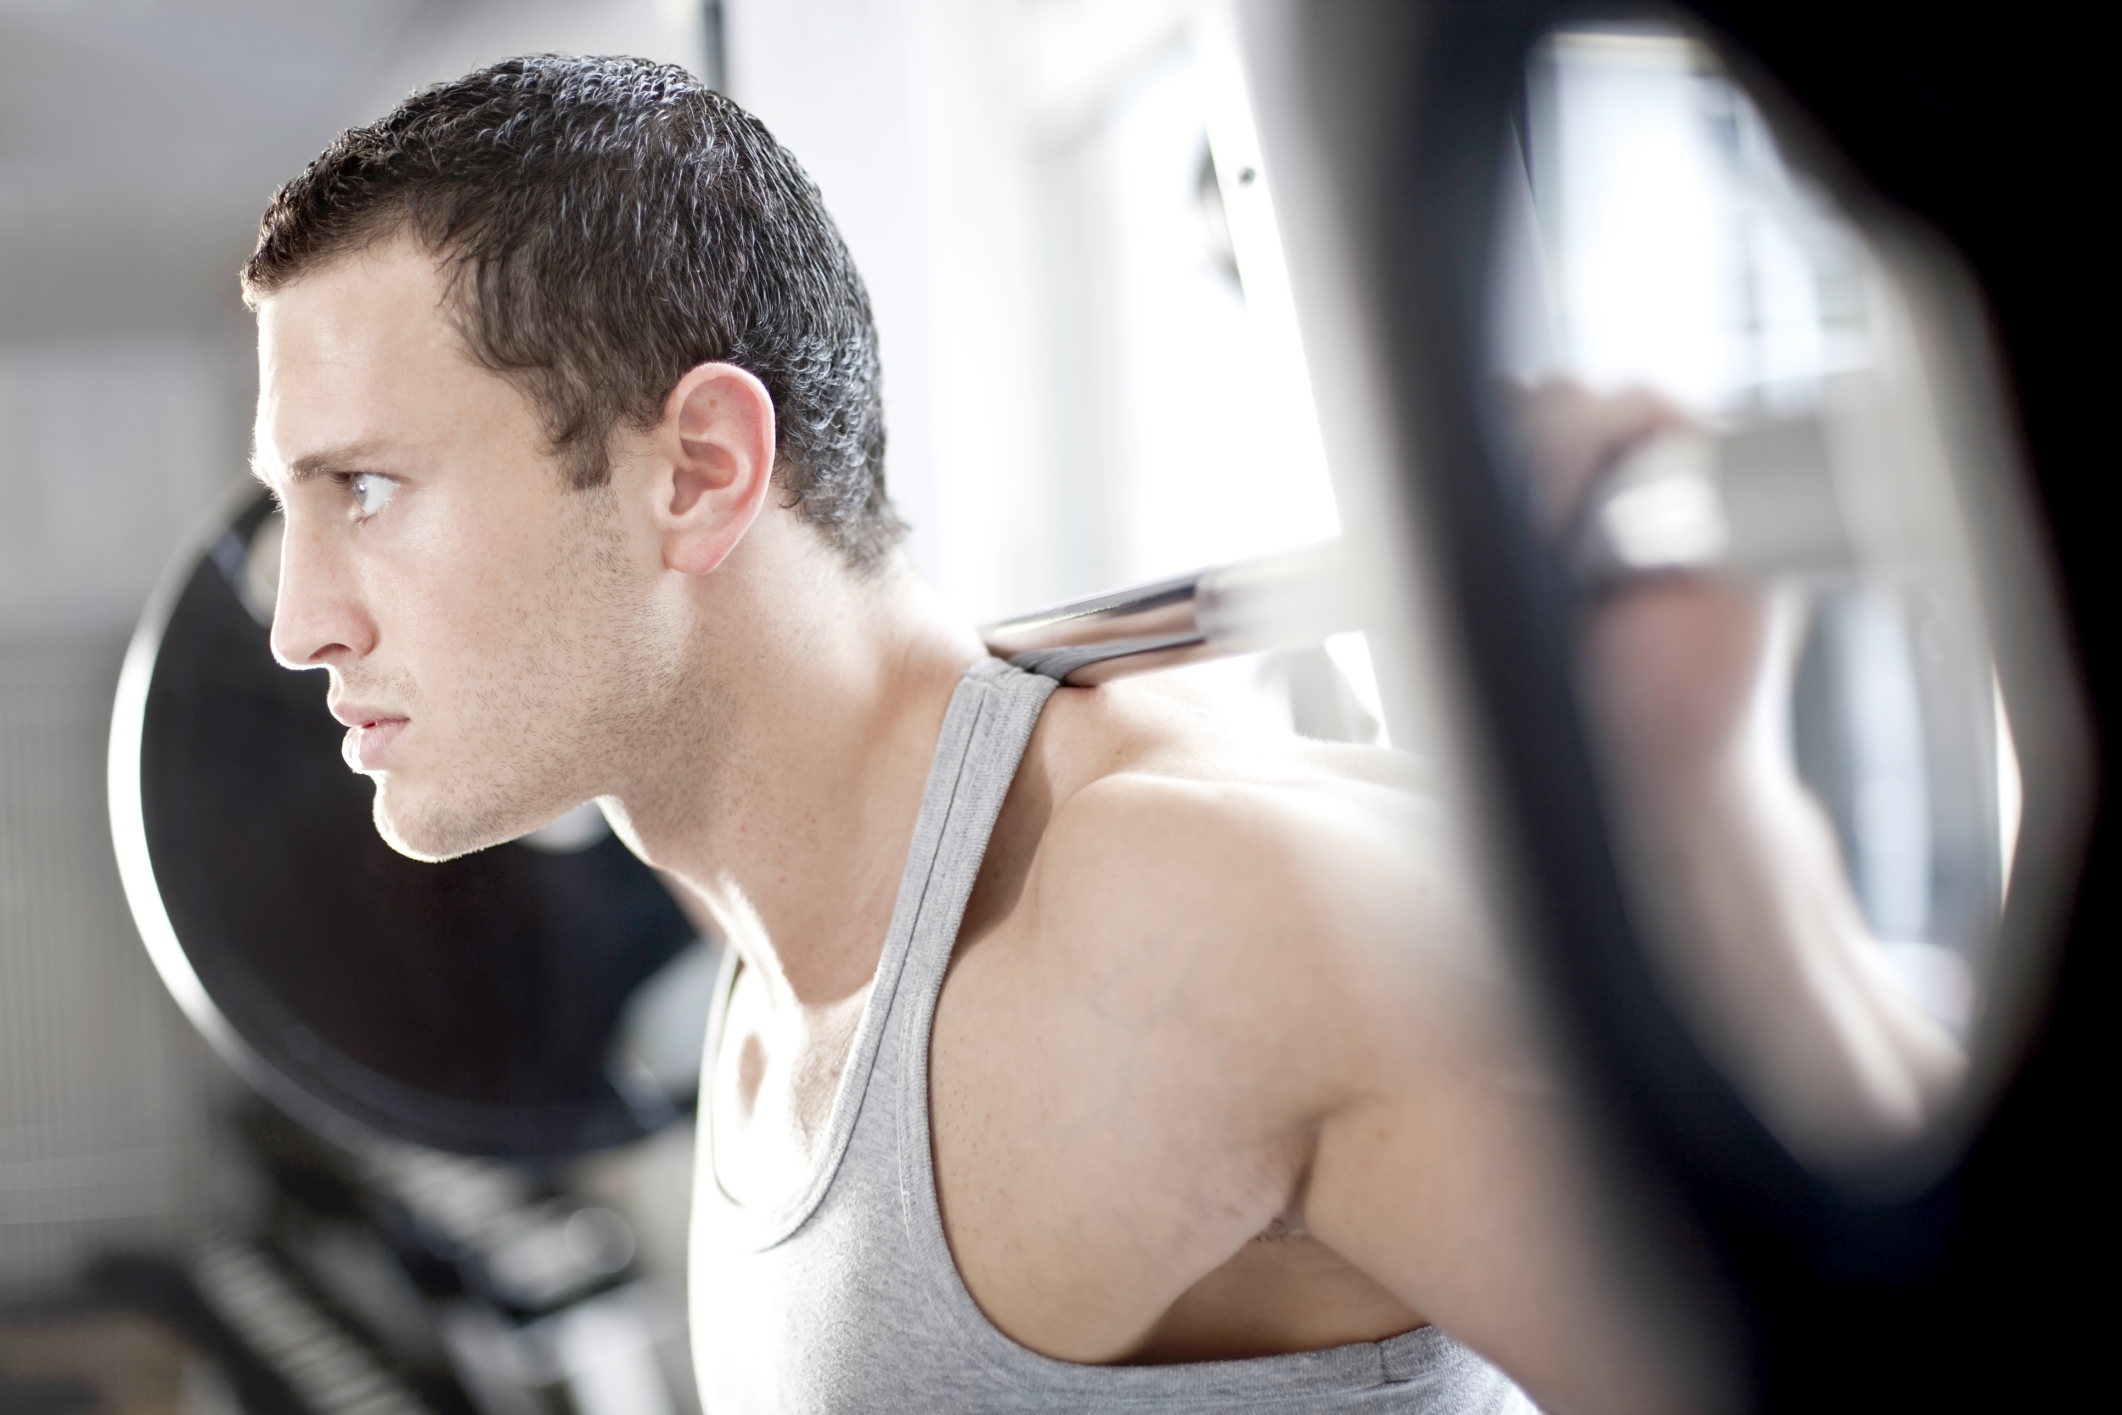 Workouts That Build Power With Just Push-Ups, Pull-Ups and Dips